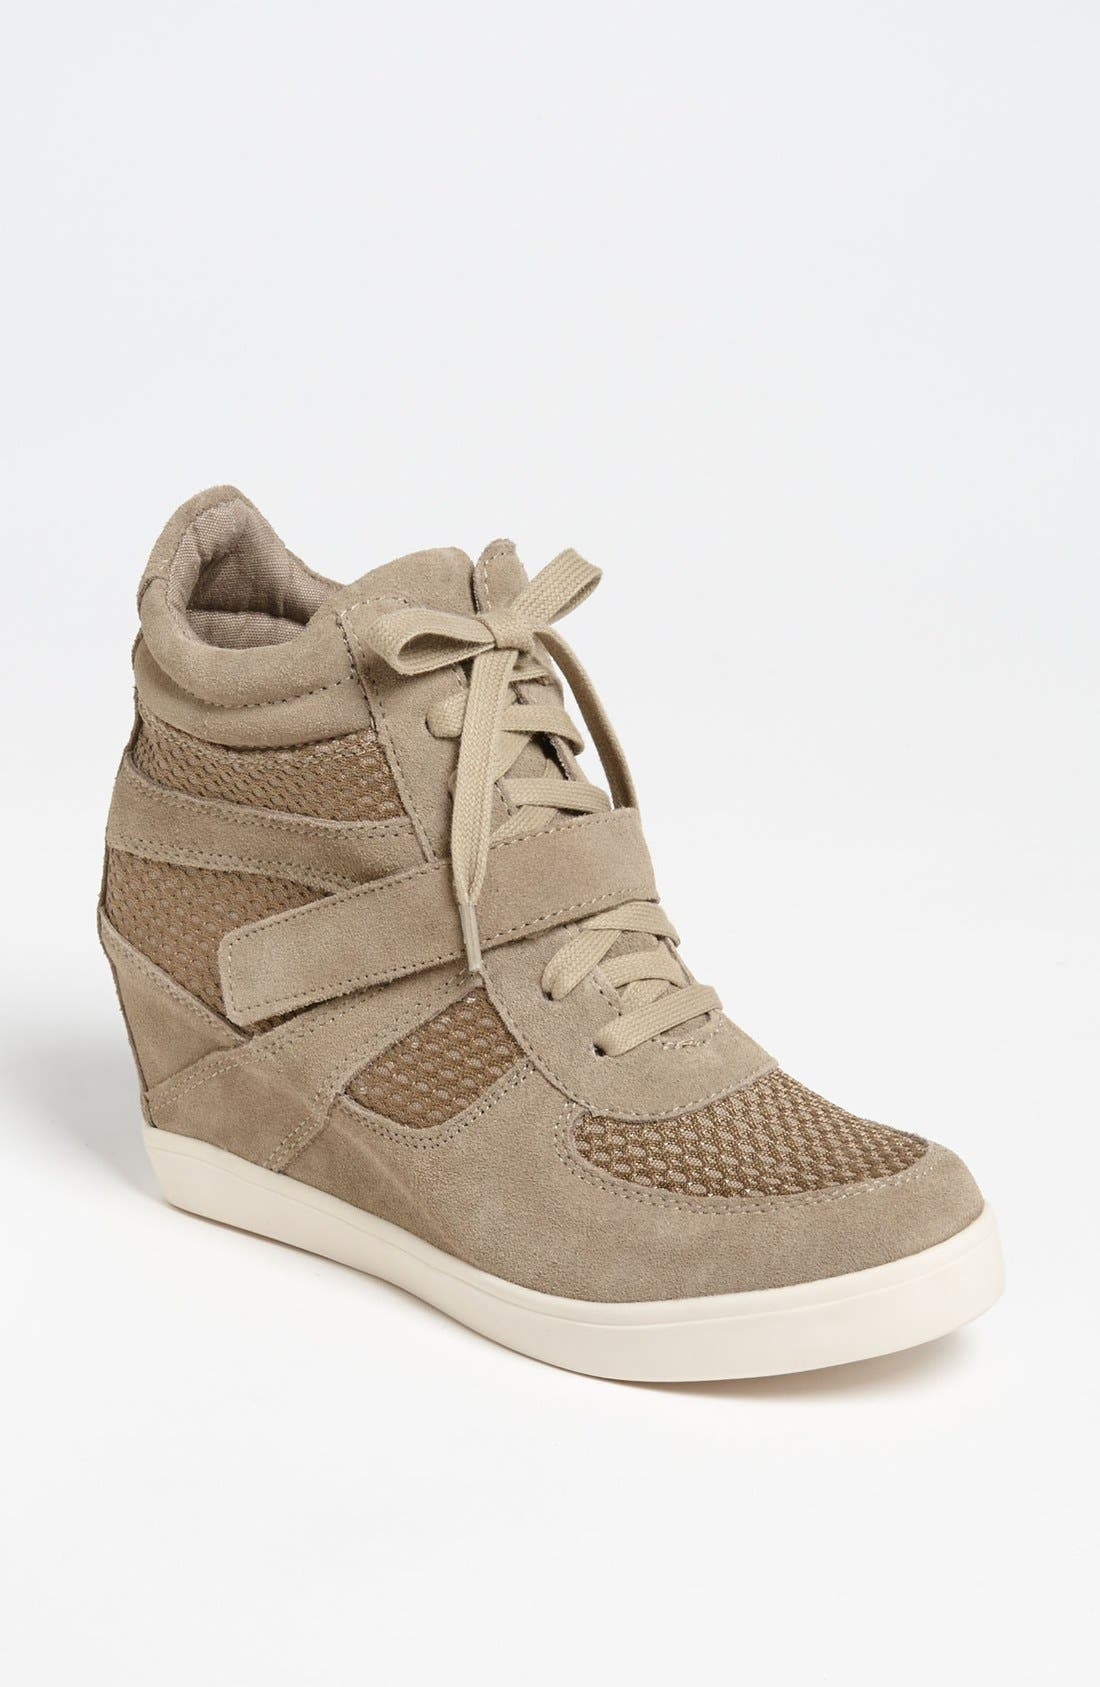 Alternate Image 1 Selected - Steve Madden 'Olympa-M' Wedge Sneaker